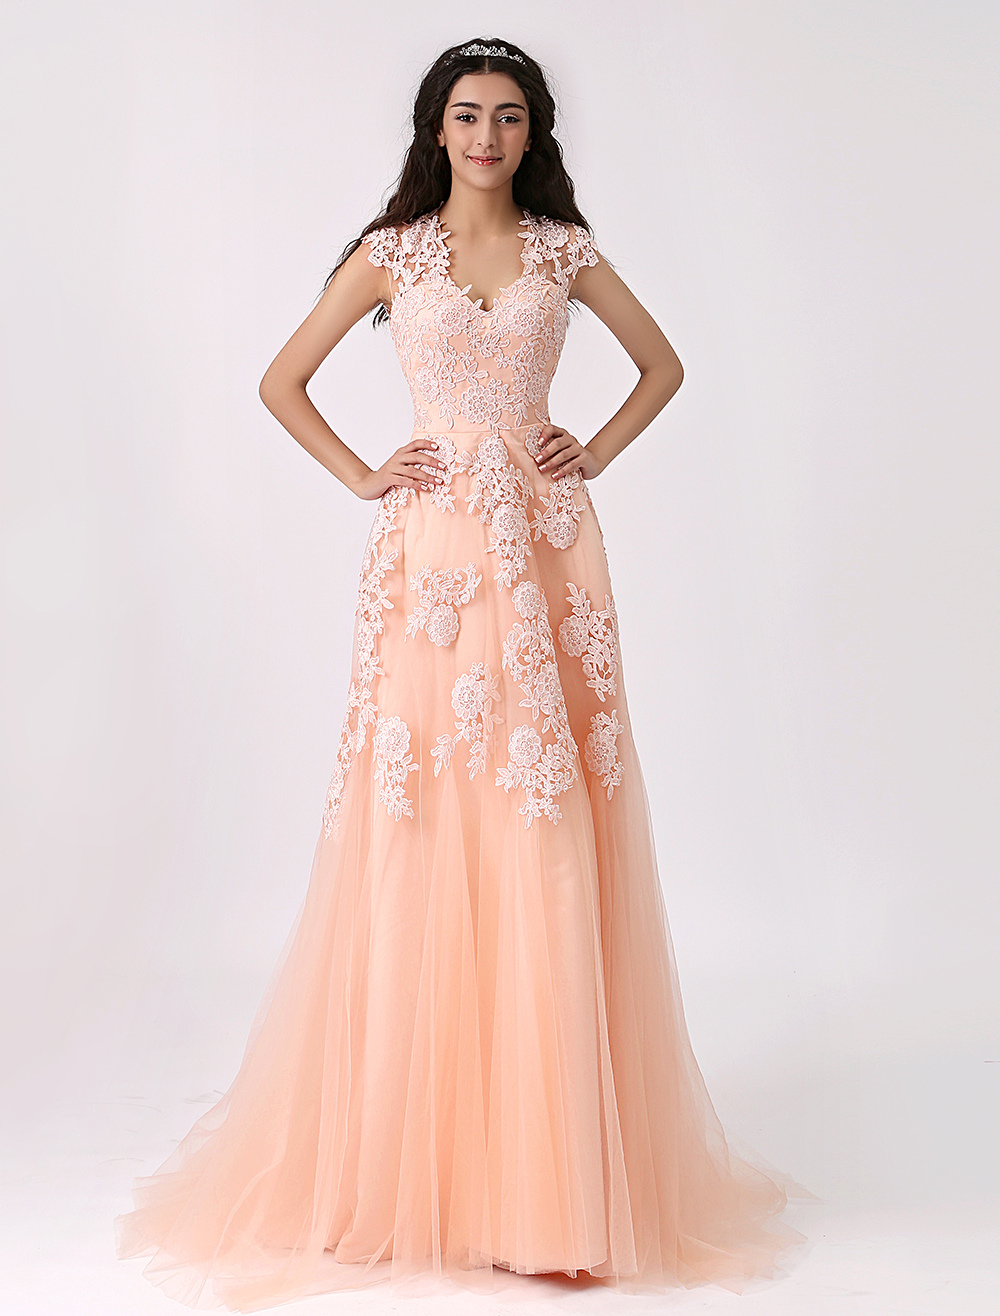 Nude Wedding Dress Lace Applique Spaghetti Straps Bridal Gown A Line Illusion Back V Neck Bride Dress With Train (Pink Wedding Dress) photo